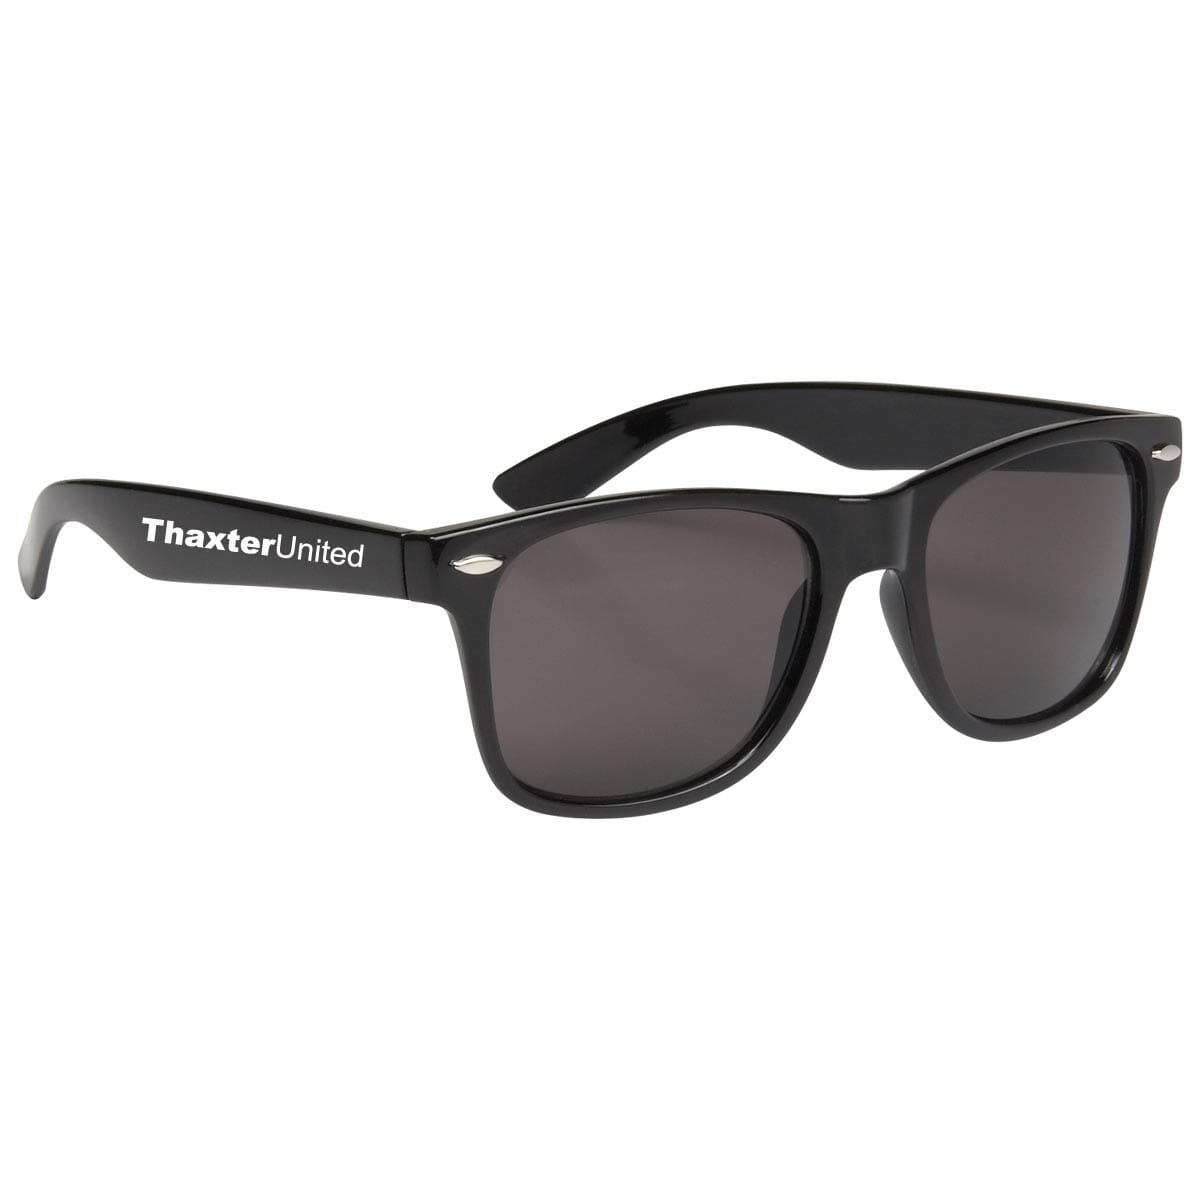 Cruise Retro Sunglasses